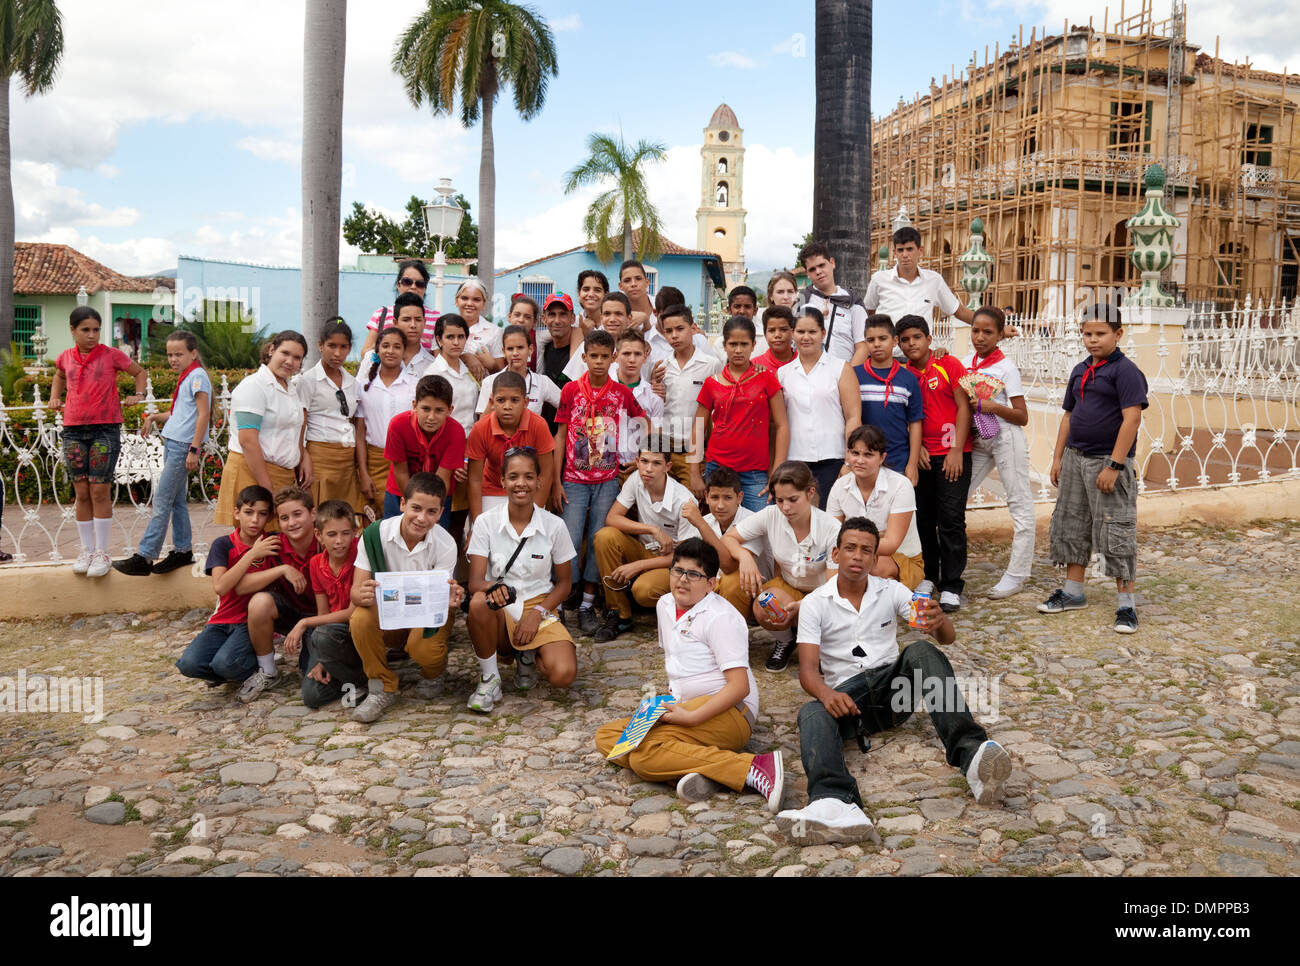 Cuba - a group of secondary schoolchildren on a day trip in the Plaza major central square, Trinidad town, Cuba, Caribbean - Stock Image